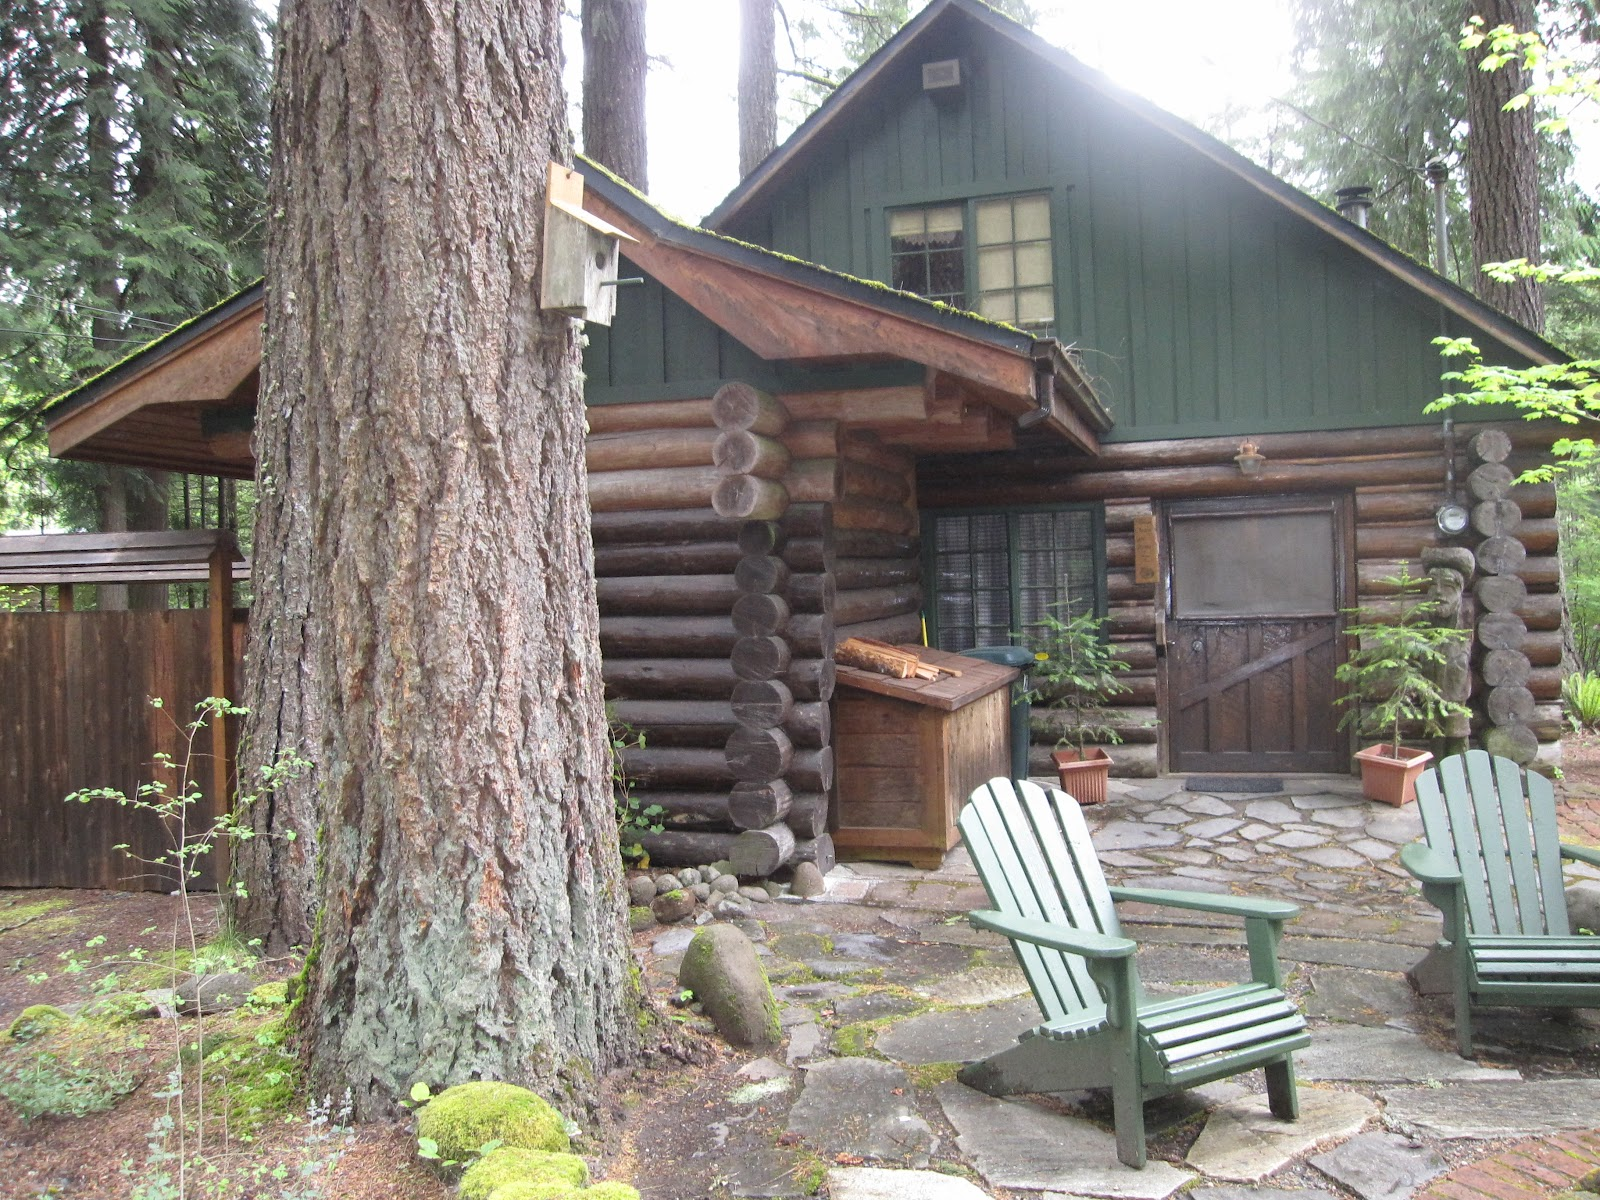 hand trend and a with picture ideas green notches notes dovetail how tools cabin of u best to incredible follansbee build cabins peter woodworking popular joiner log wood style